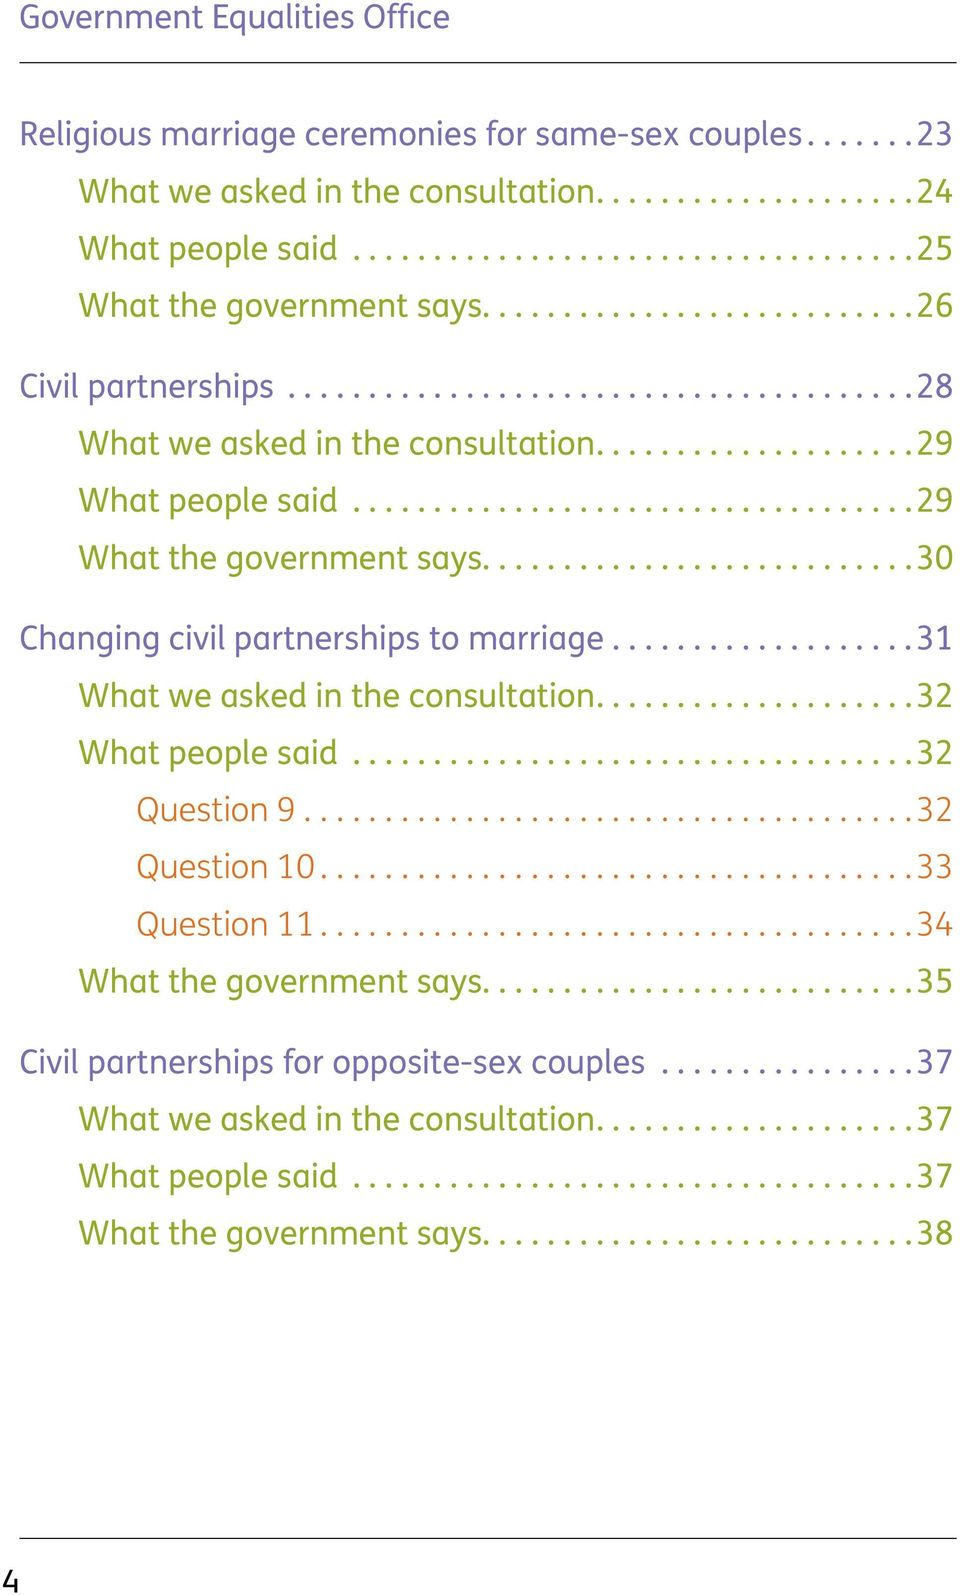 ......................... 30 Changing civil partnerships to marriage...................31 What we asked in the consultation................... 32 What people said.................................. 32 Question 9.